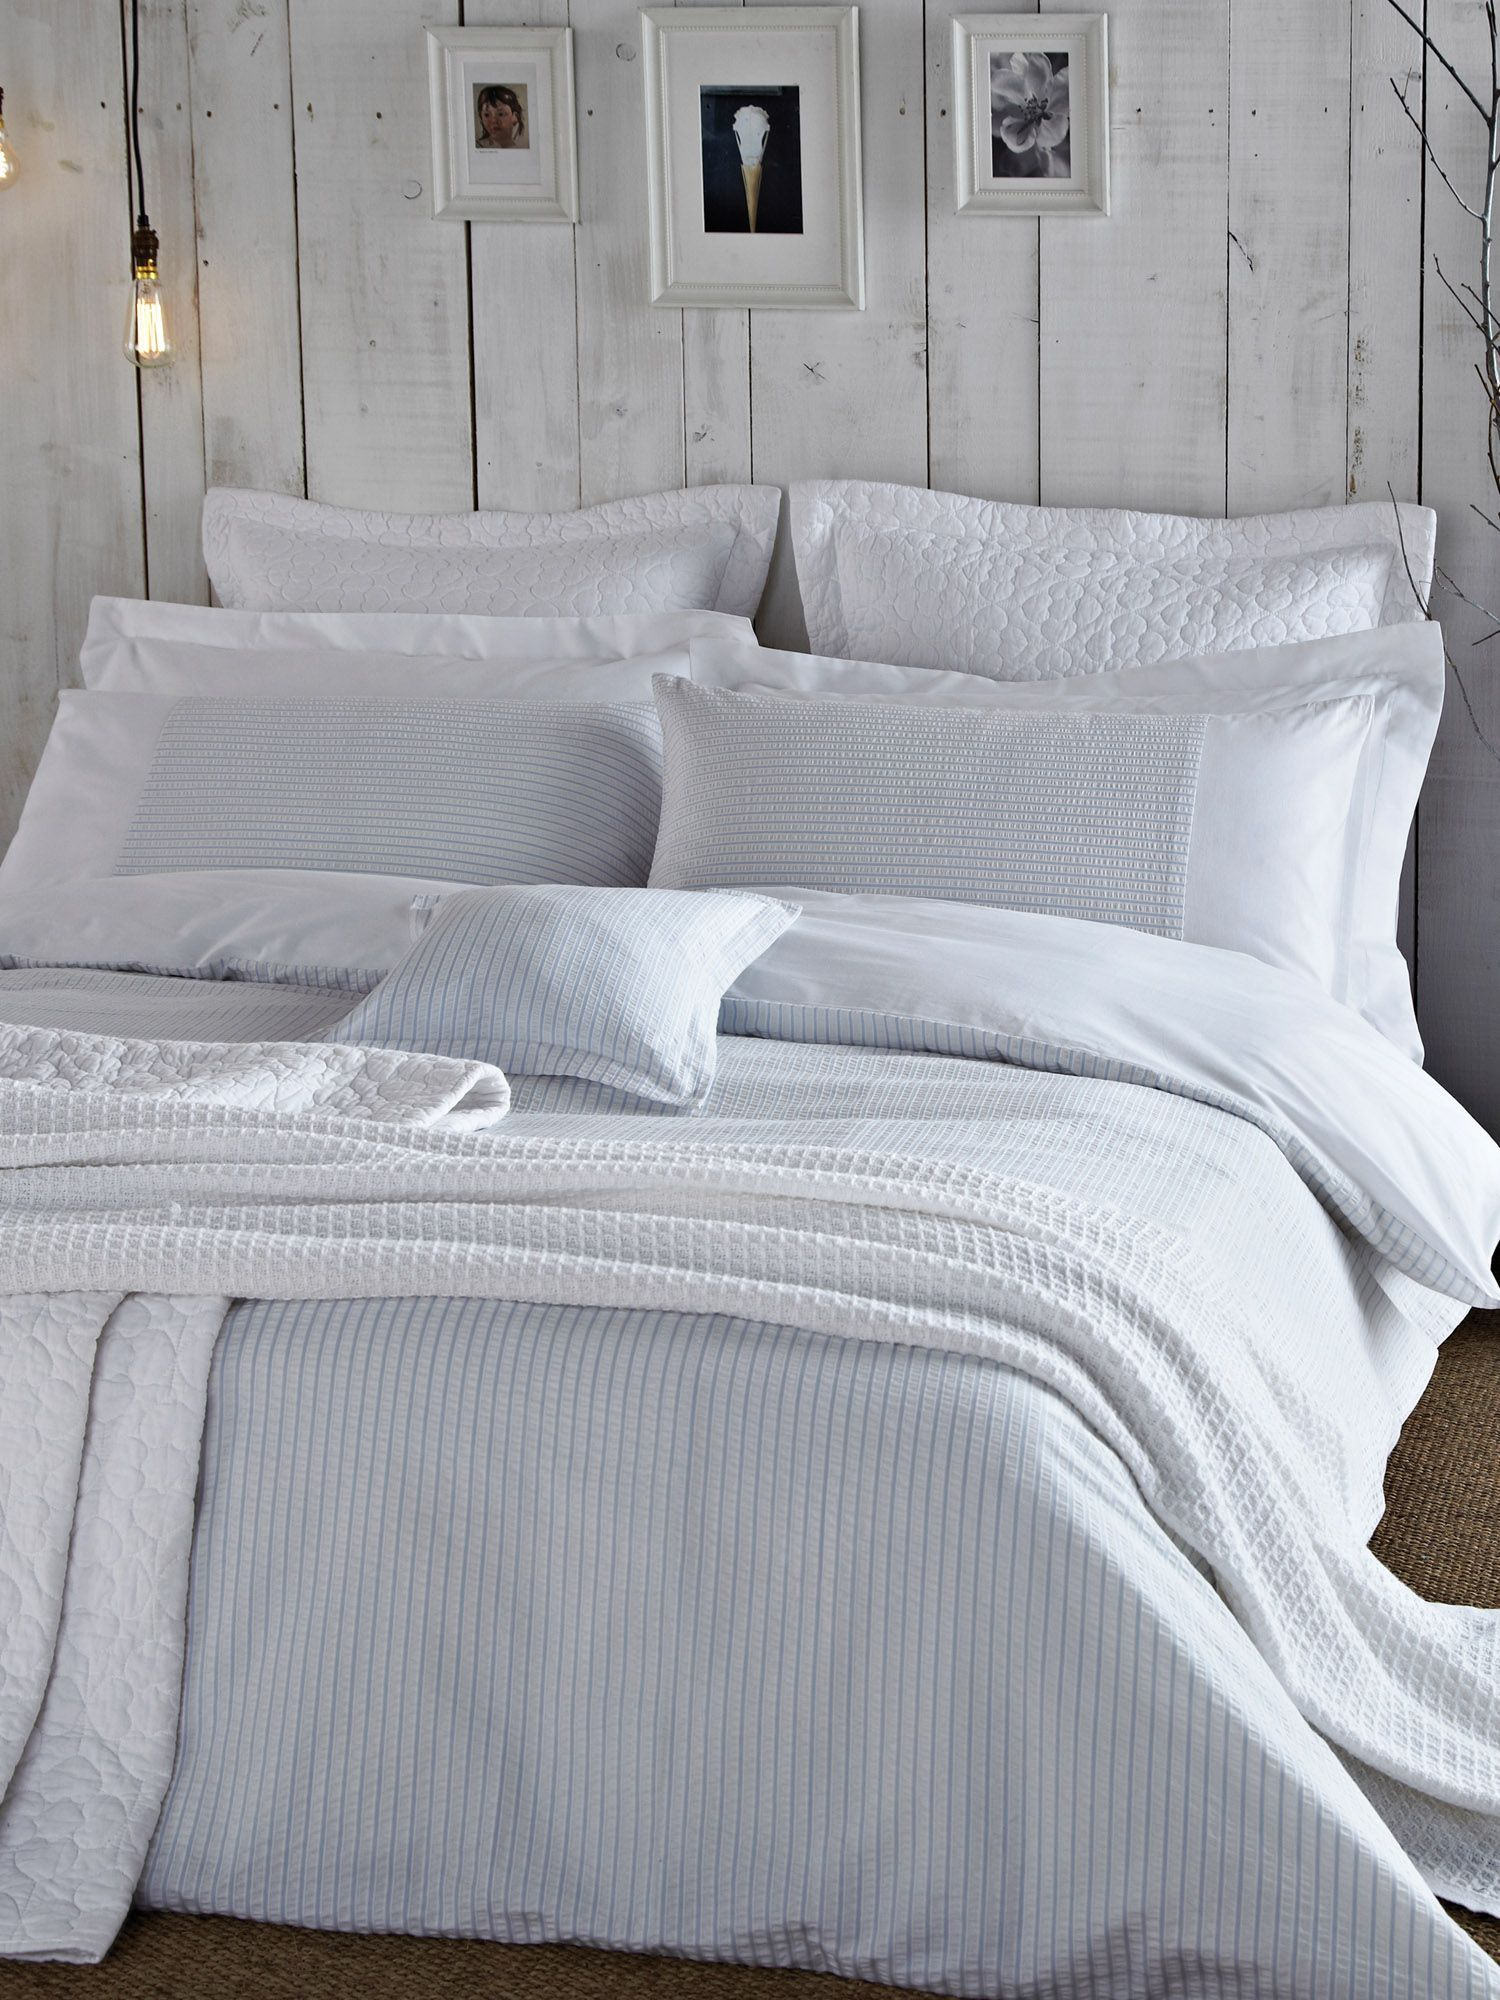 greywhitebedrooms Grey and white bedroom ideas rugs bedspreads